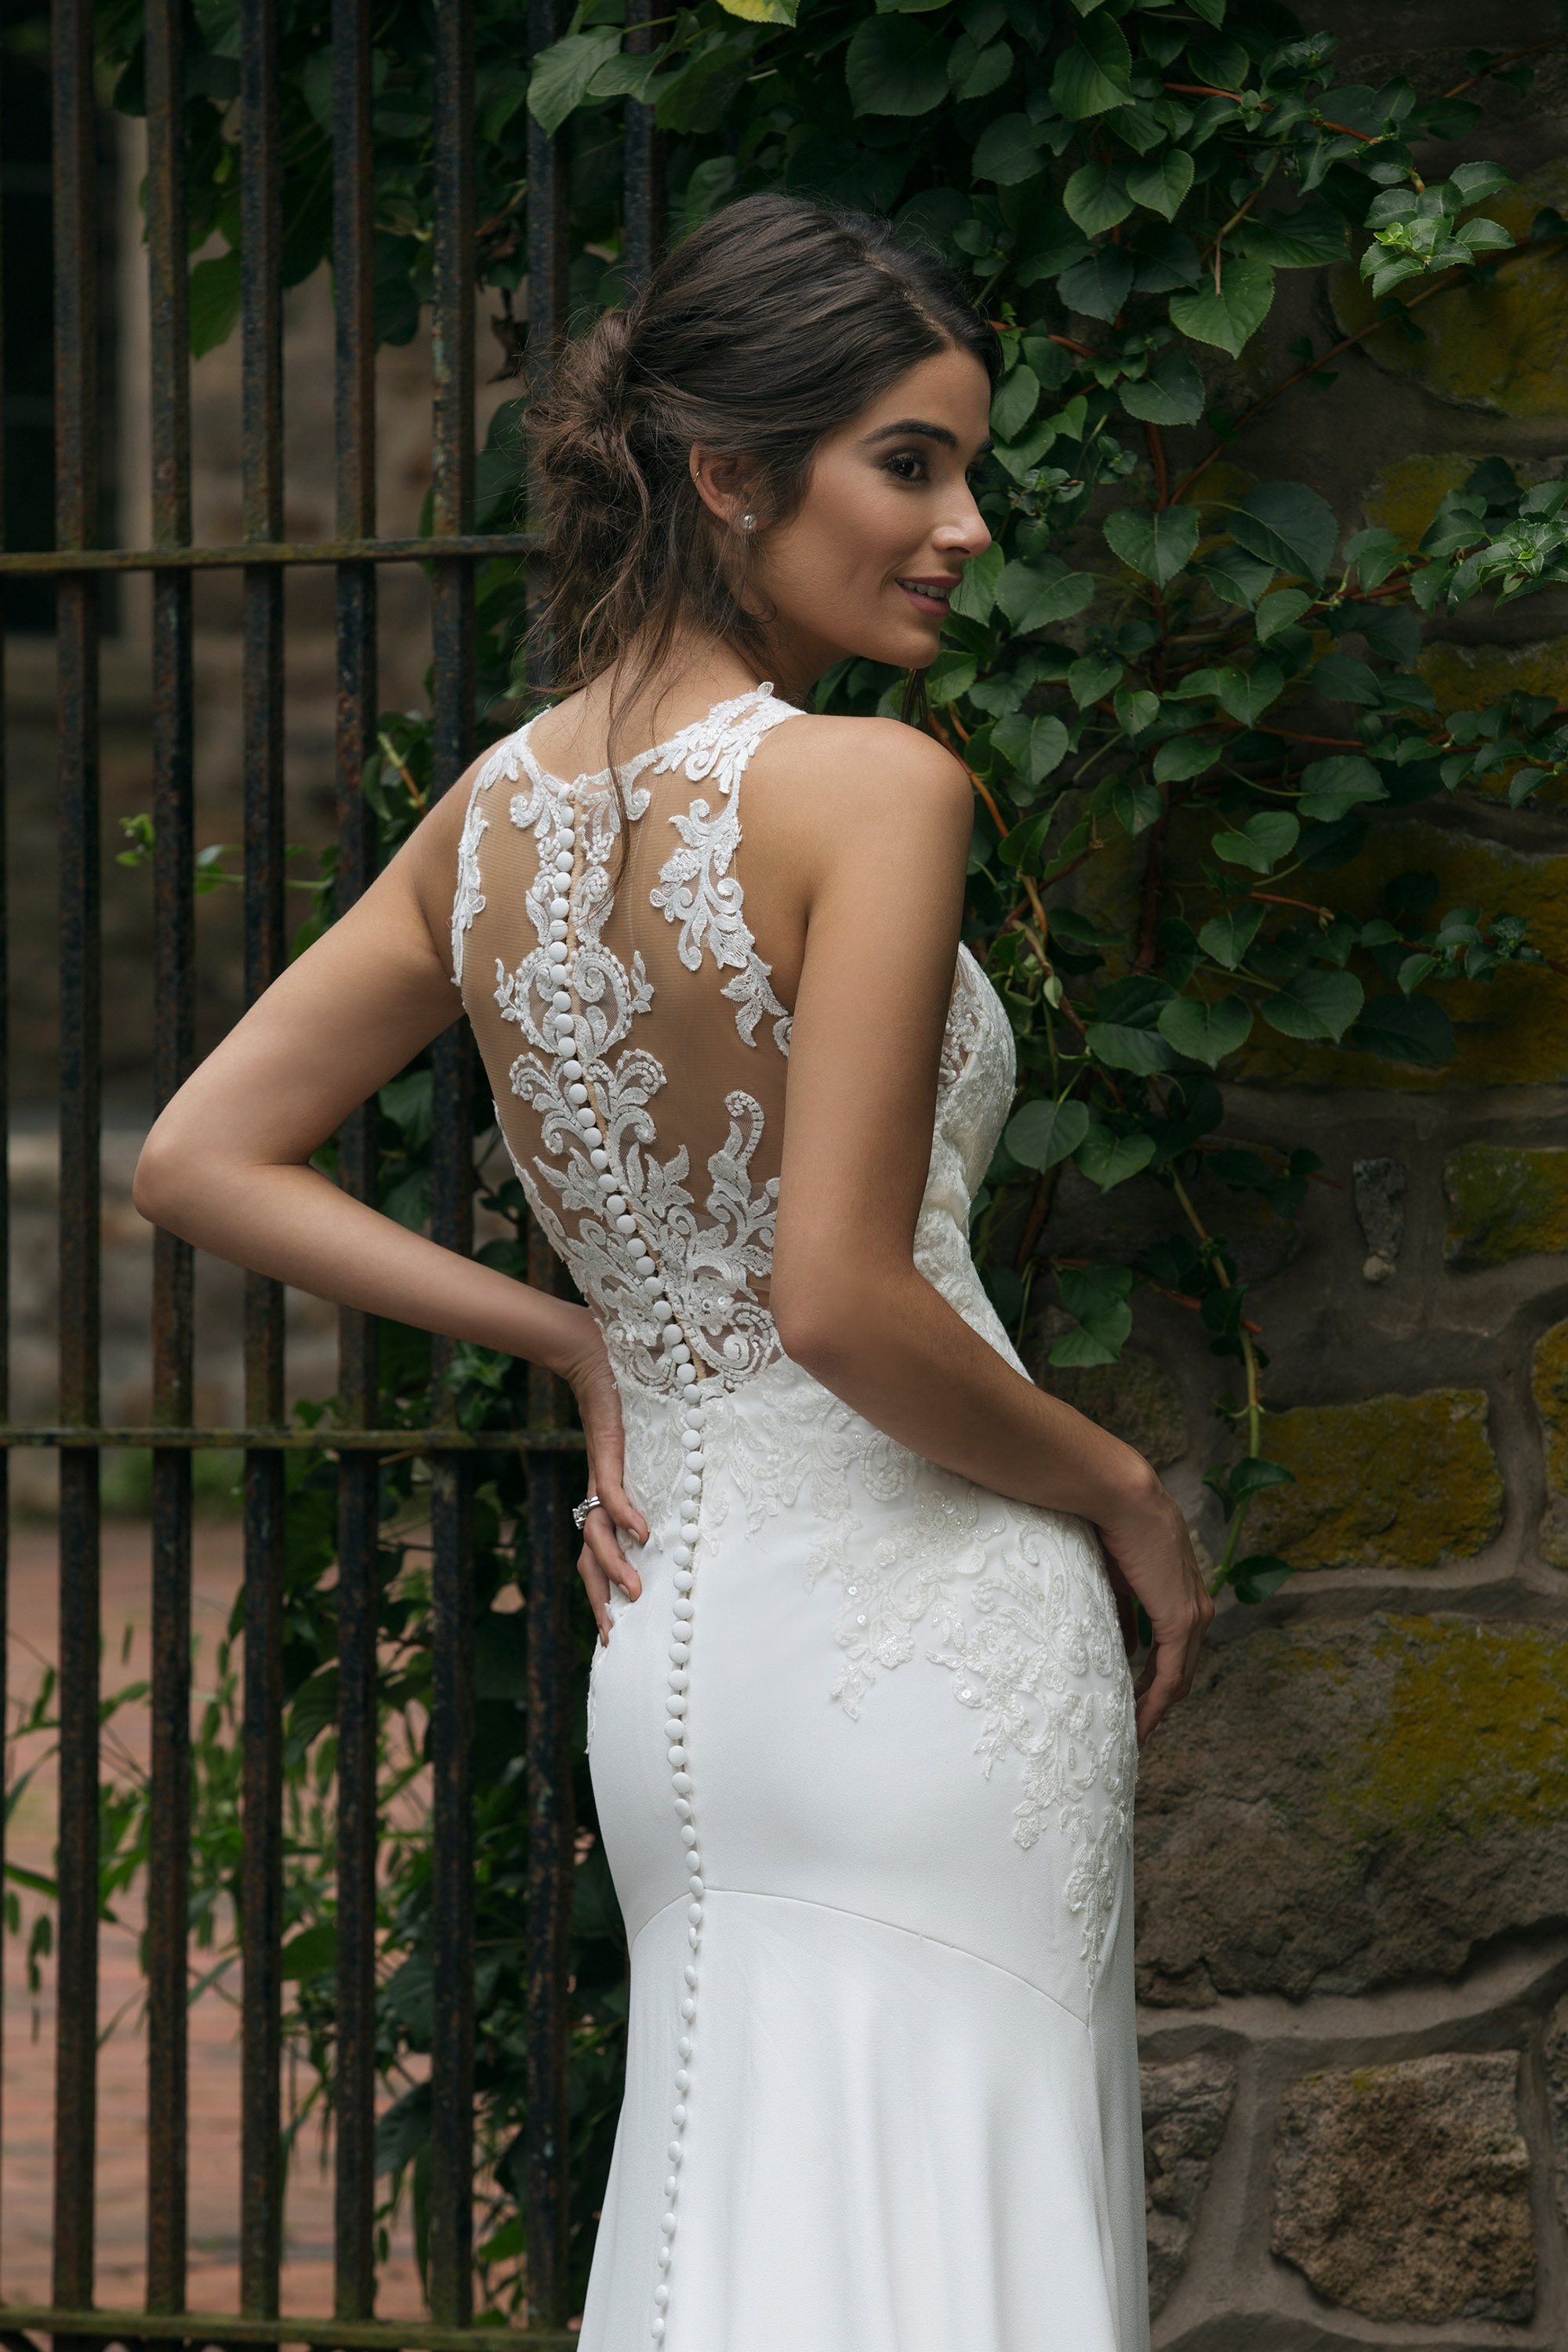 44048 - Crepe fit and flare gown, lined in jersey for effortless movement, lace appliques adorn bodice